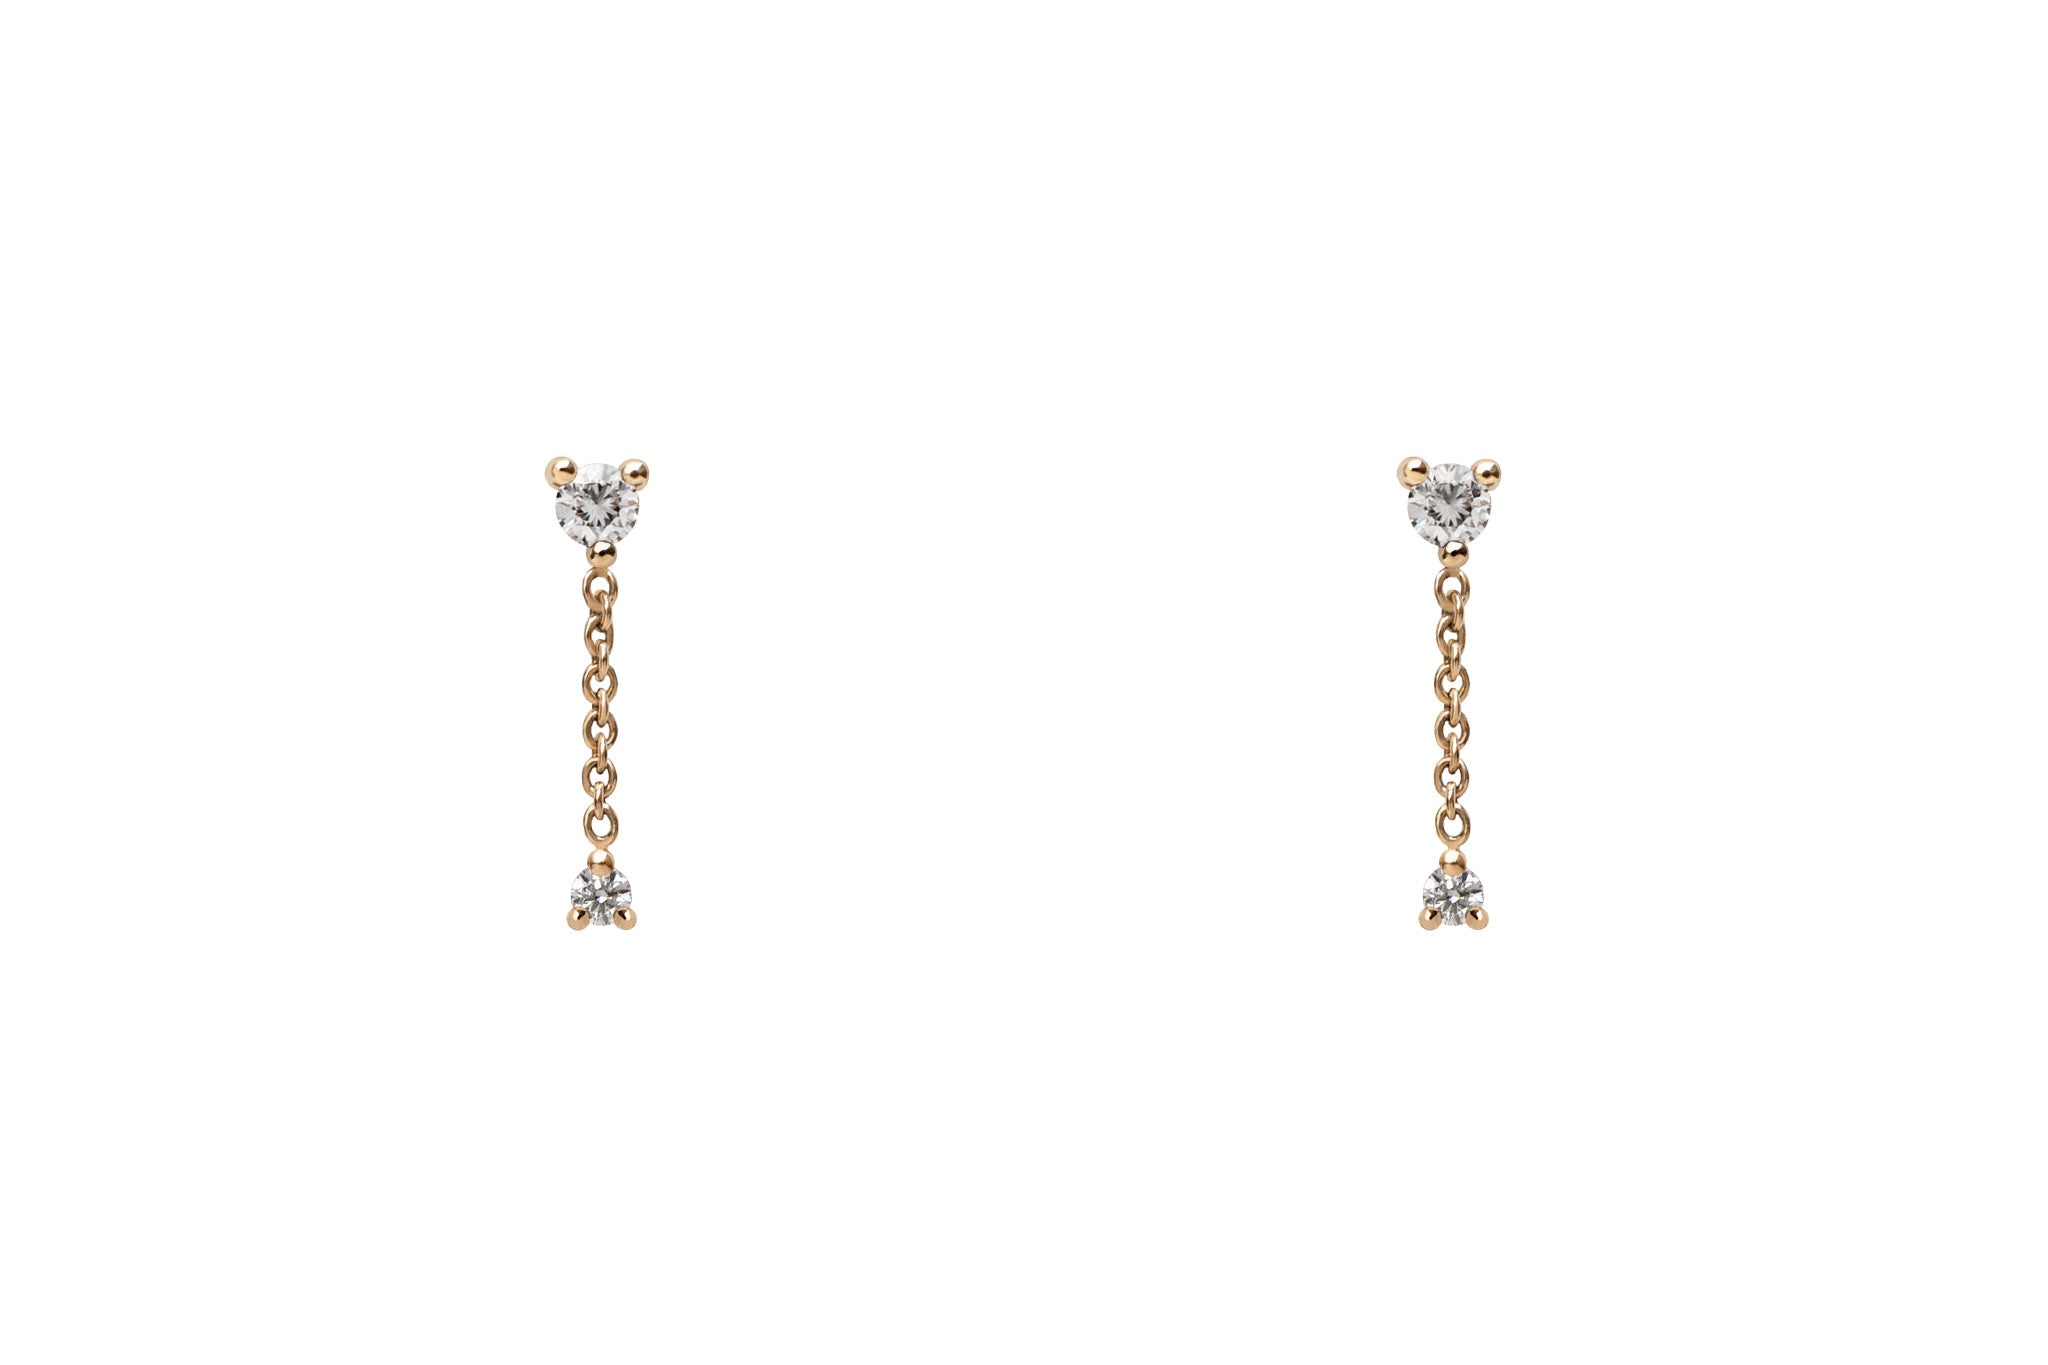 14k Gold Diamond Chain Drop Earrings E2327